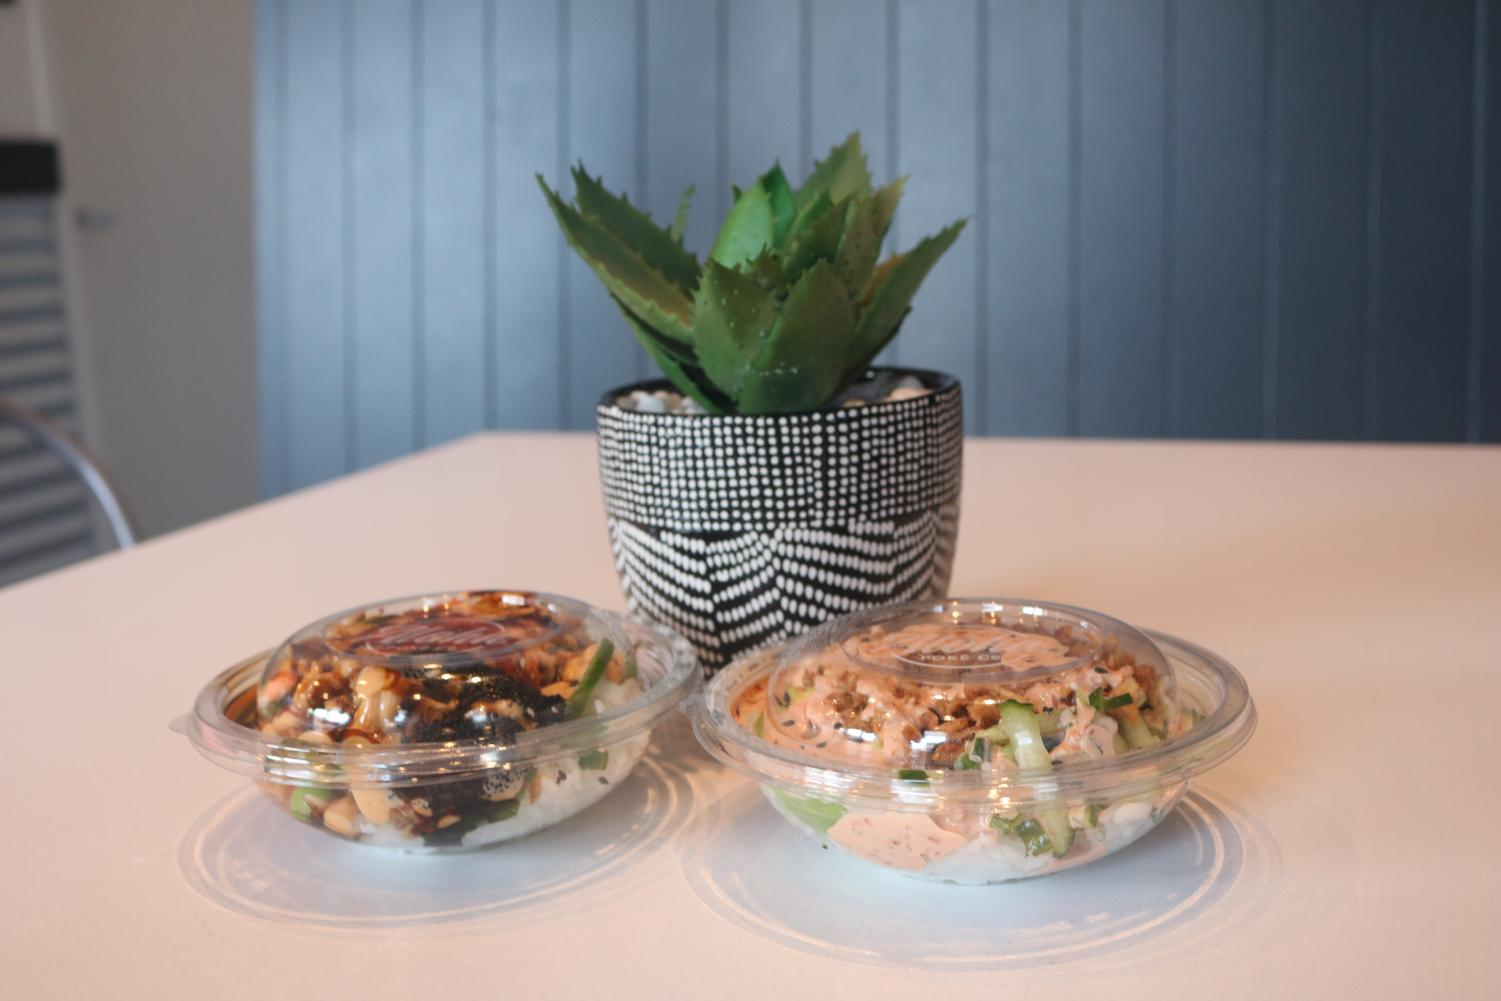 Aloha Poke's house specials: The Crunch Bowl and Volcano Bowl